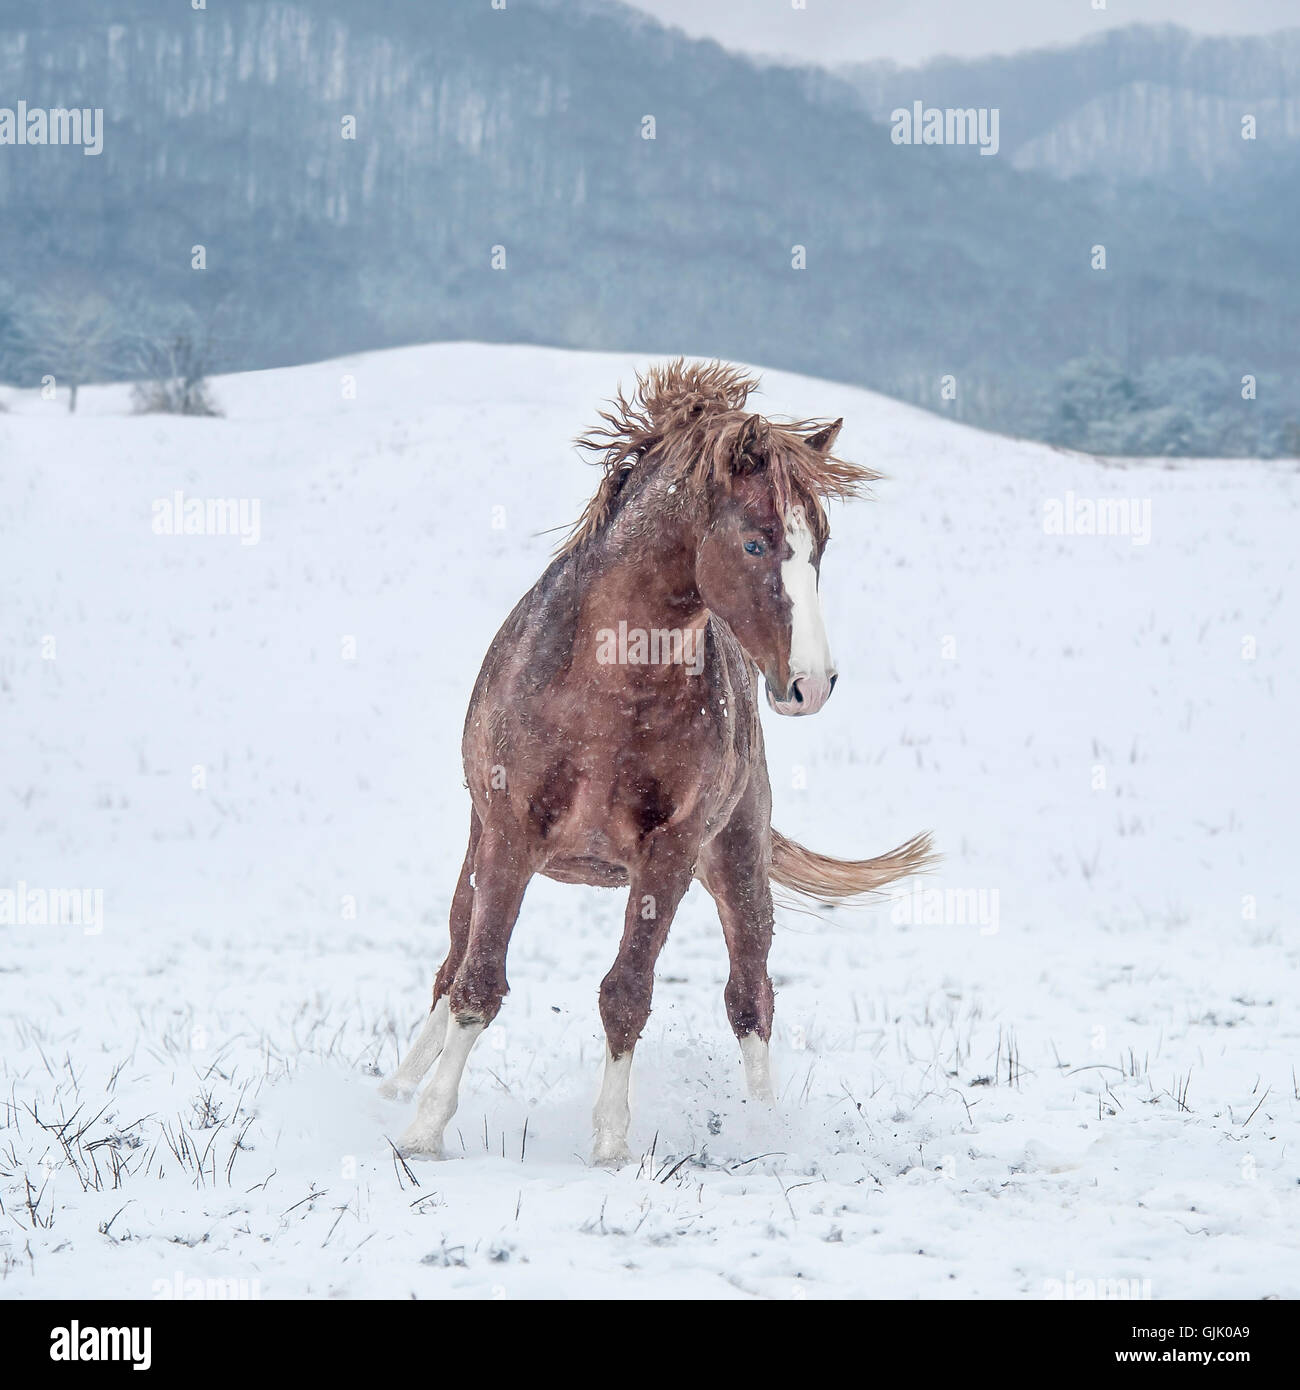 Warmblood stallion getting frisky in snow - Stock Image